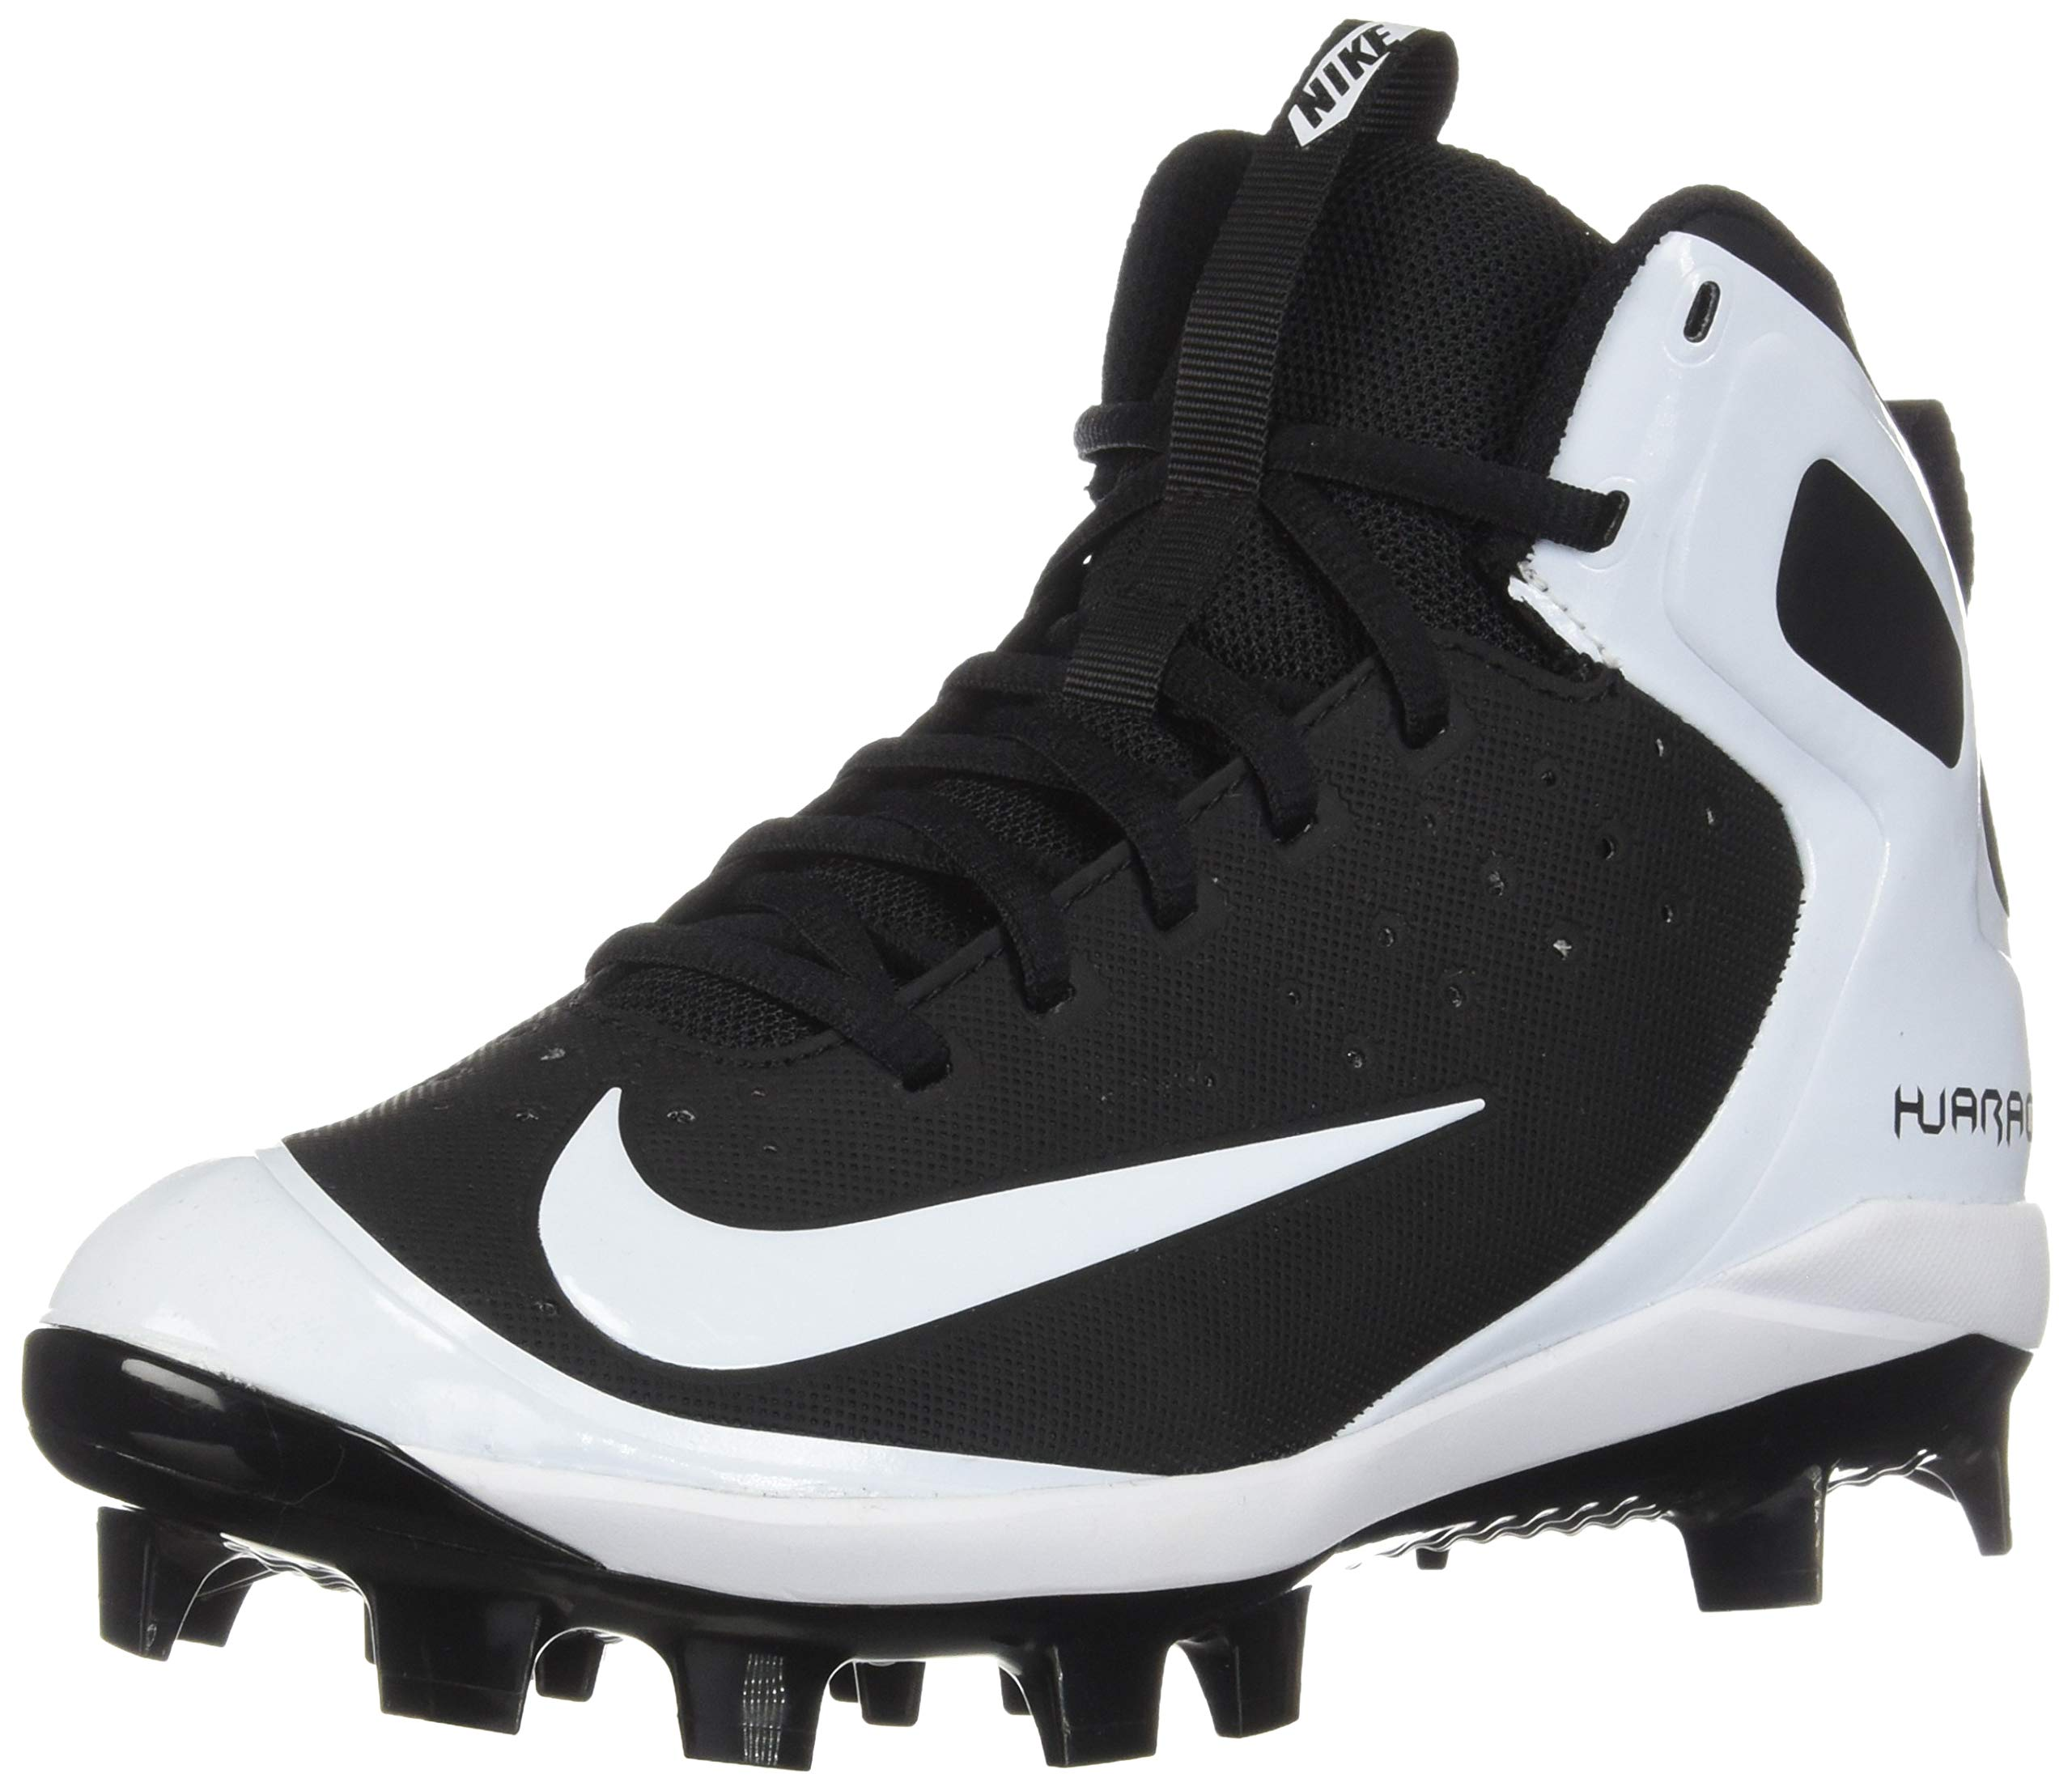 Nike Kids' Alpha Huarache Pro Mid Baseball Cleats (4, Black/White) by Nike